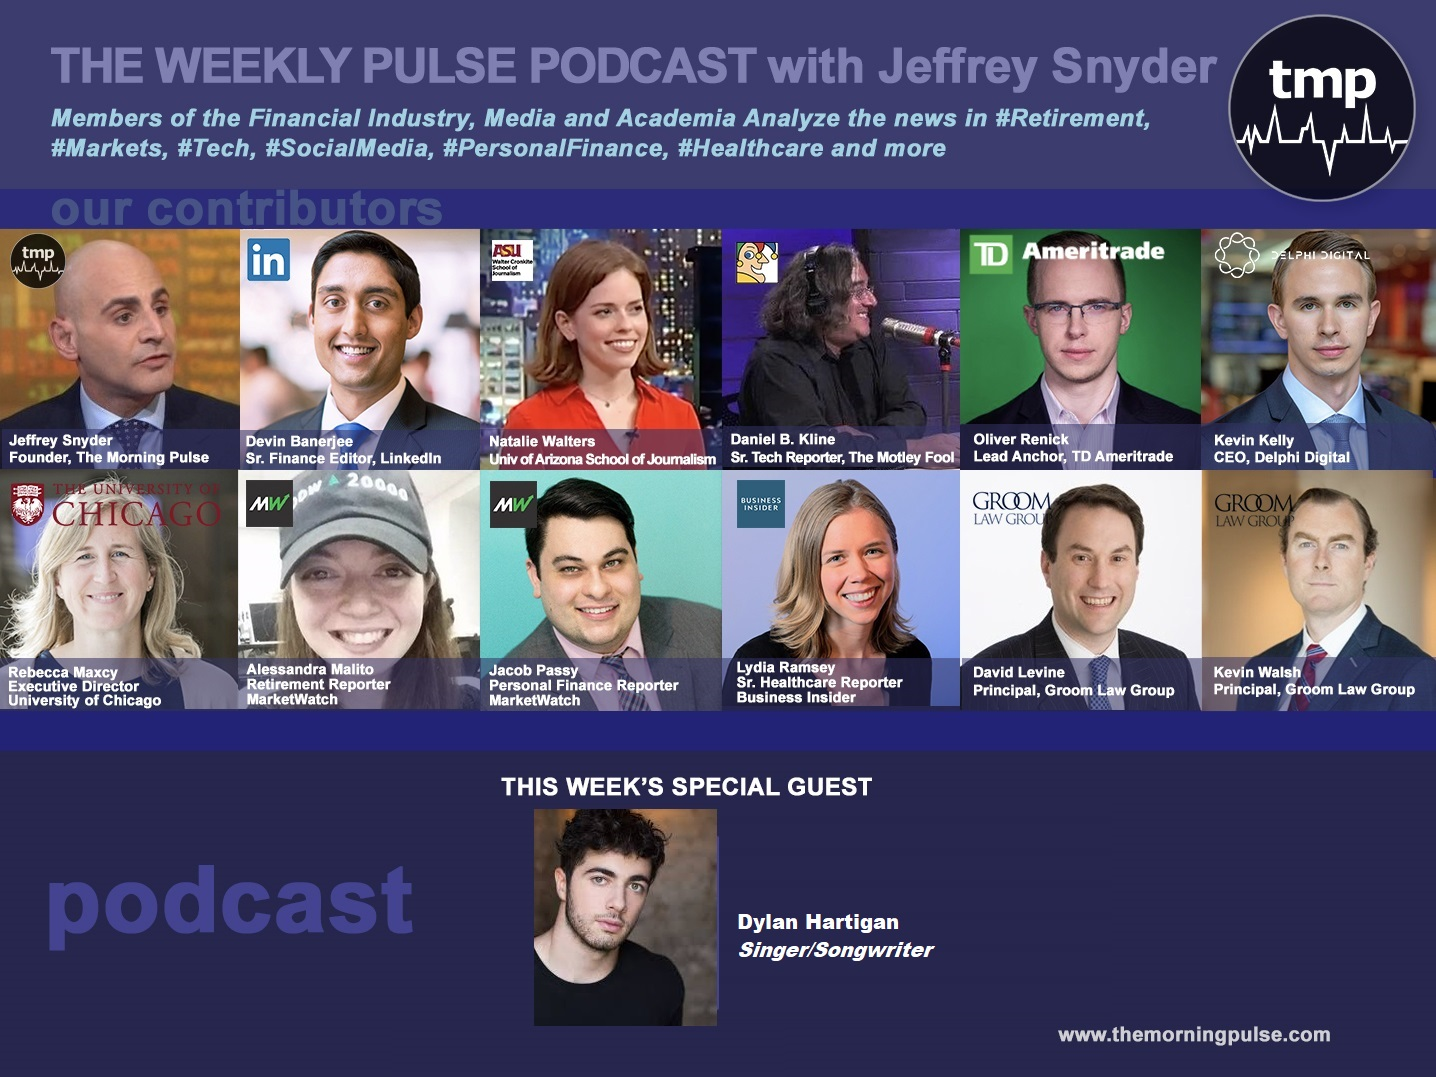 (Podcast) 9/8/2019 In this episode: (1) Singer/Songwriter and NBC The Voice finalist Dylan Hartigan, (2) FinCon2019, (3) home health workers: the hardest and most demanding job, & more.